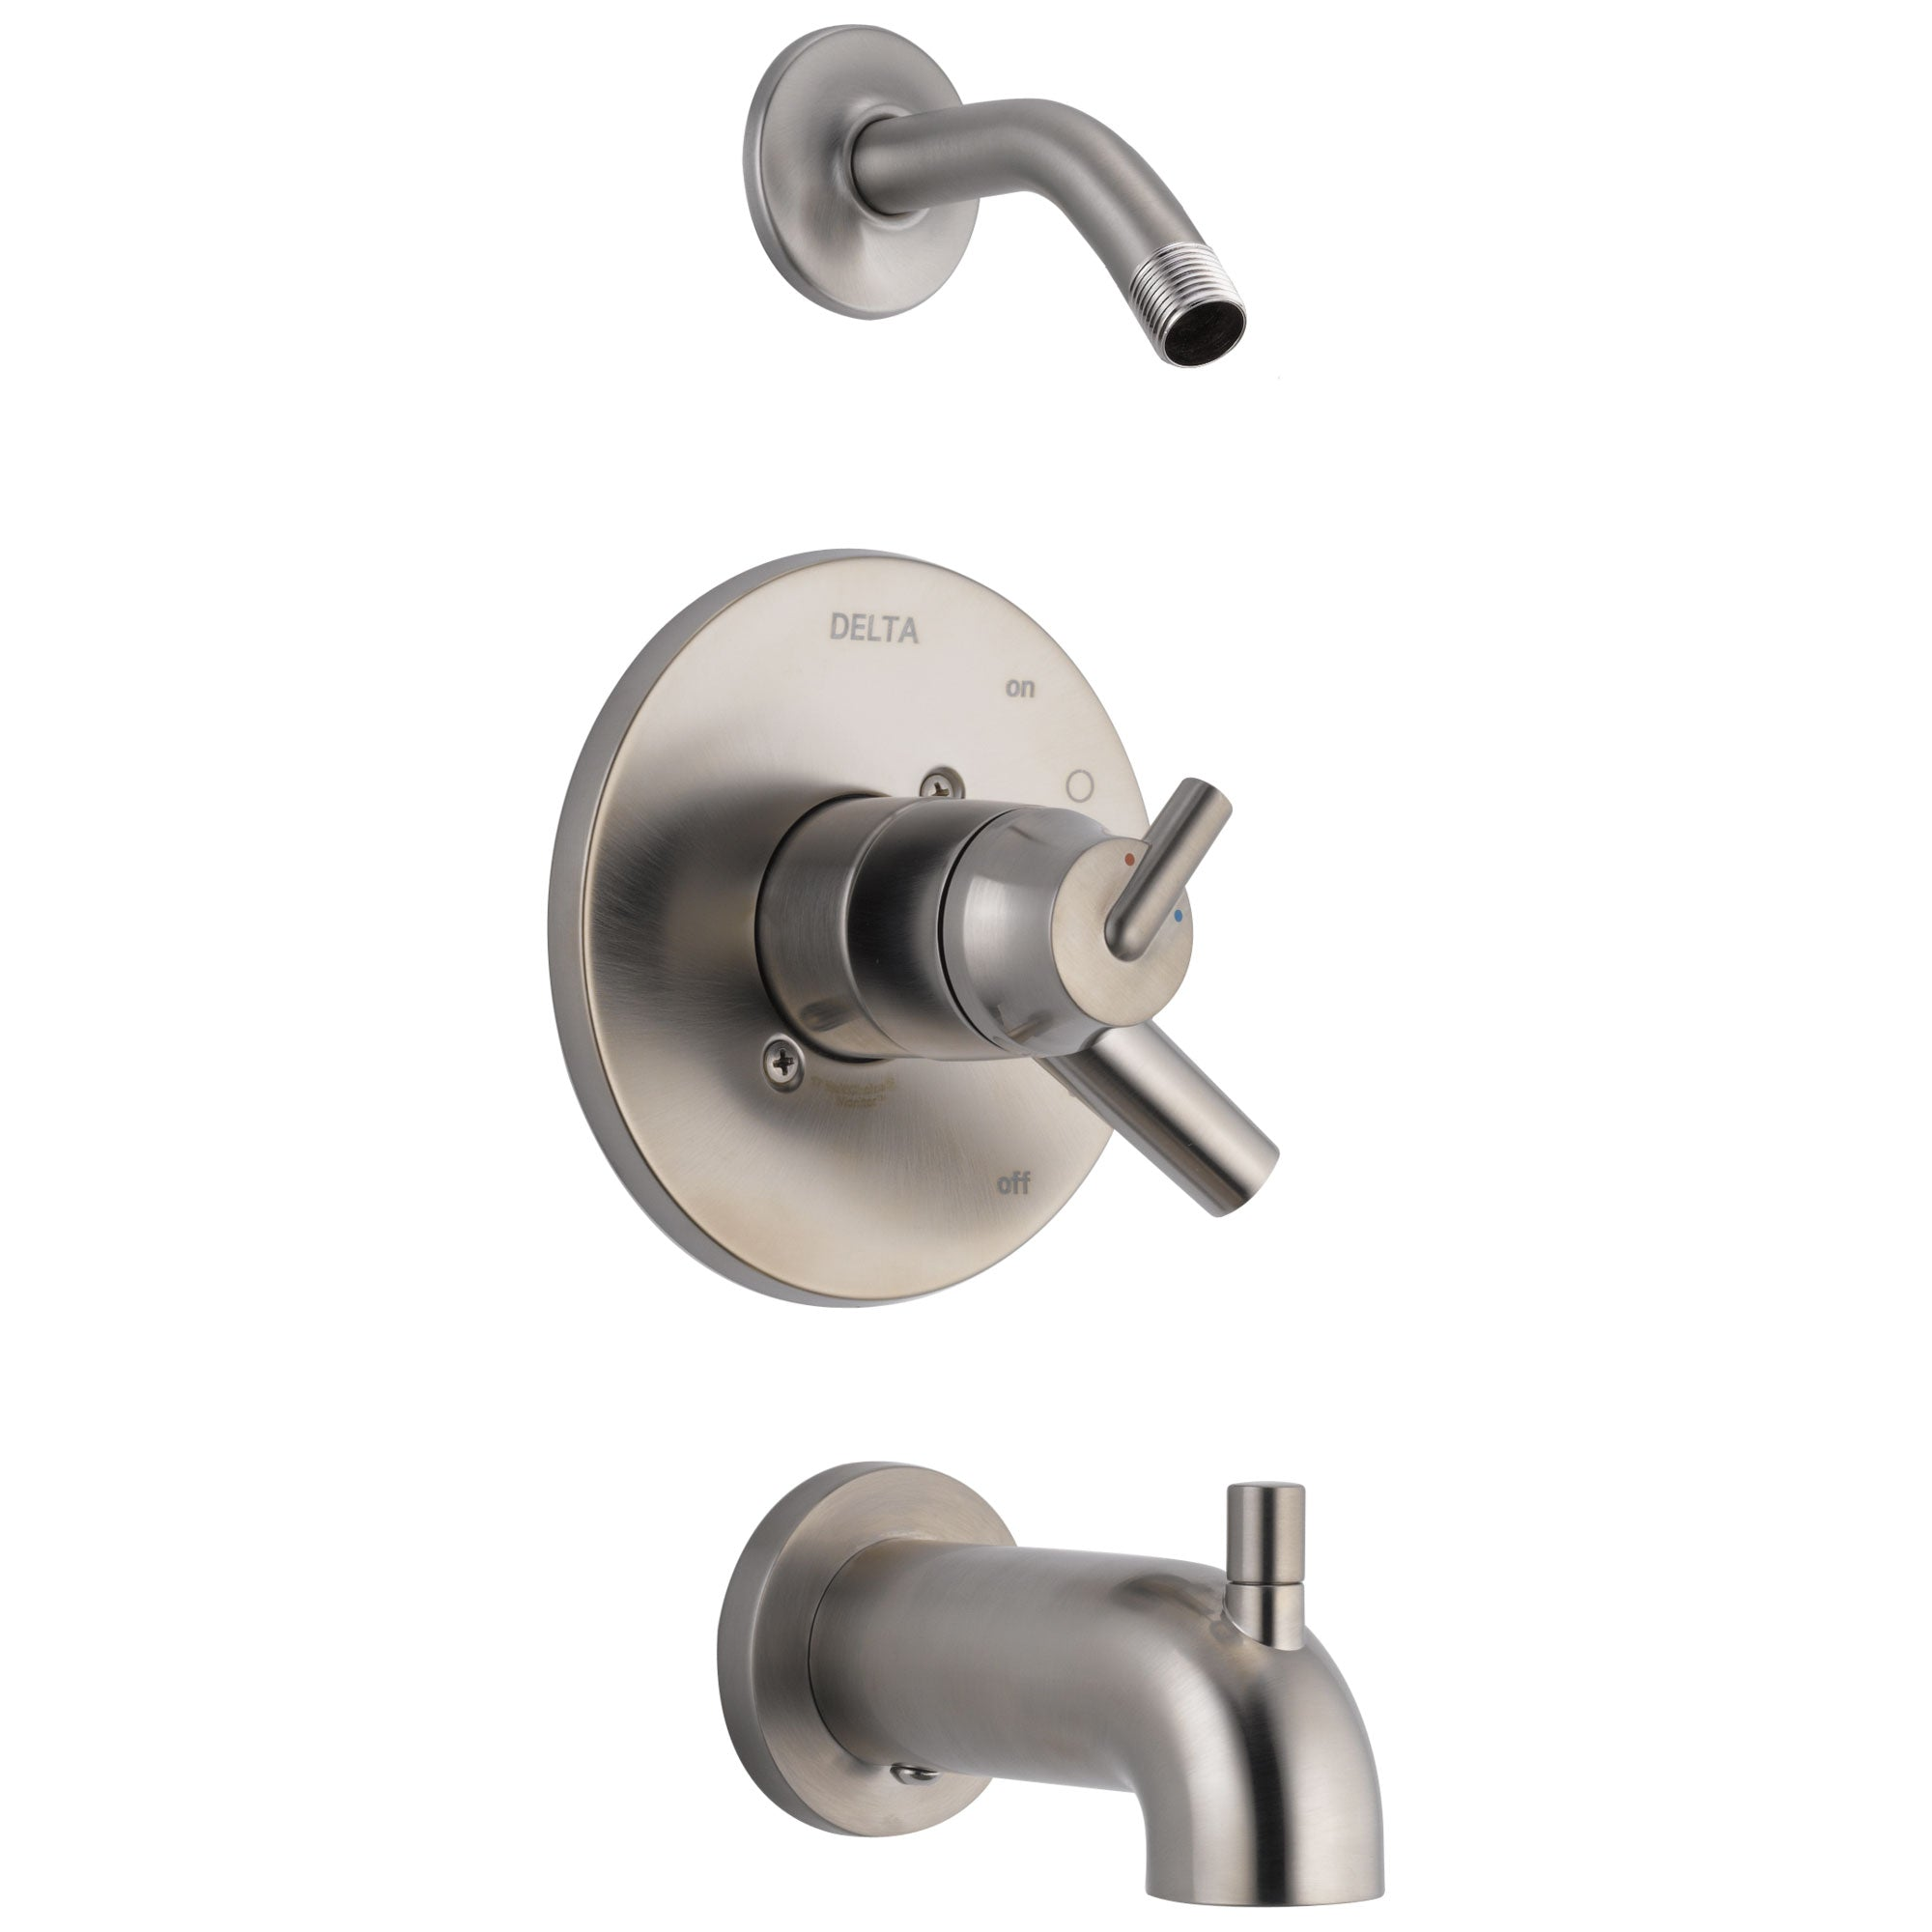 Delta Trinsic Collection Stainless Steel Finish Dual Temp and Volume Control Tub and Shower Combo Less Shower Head Includes Rough Valve without Stops D2299V